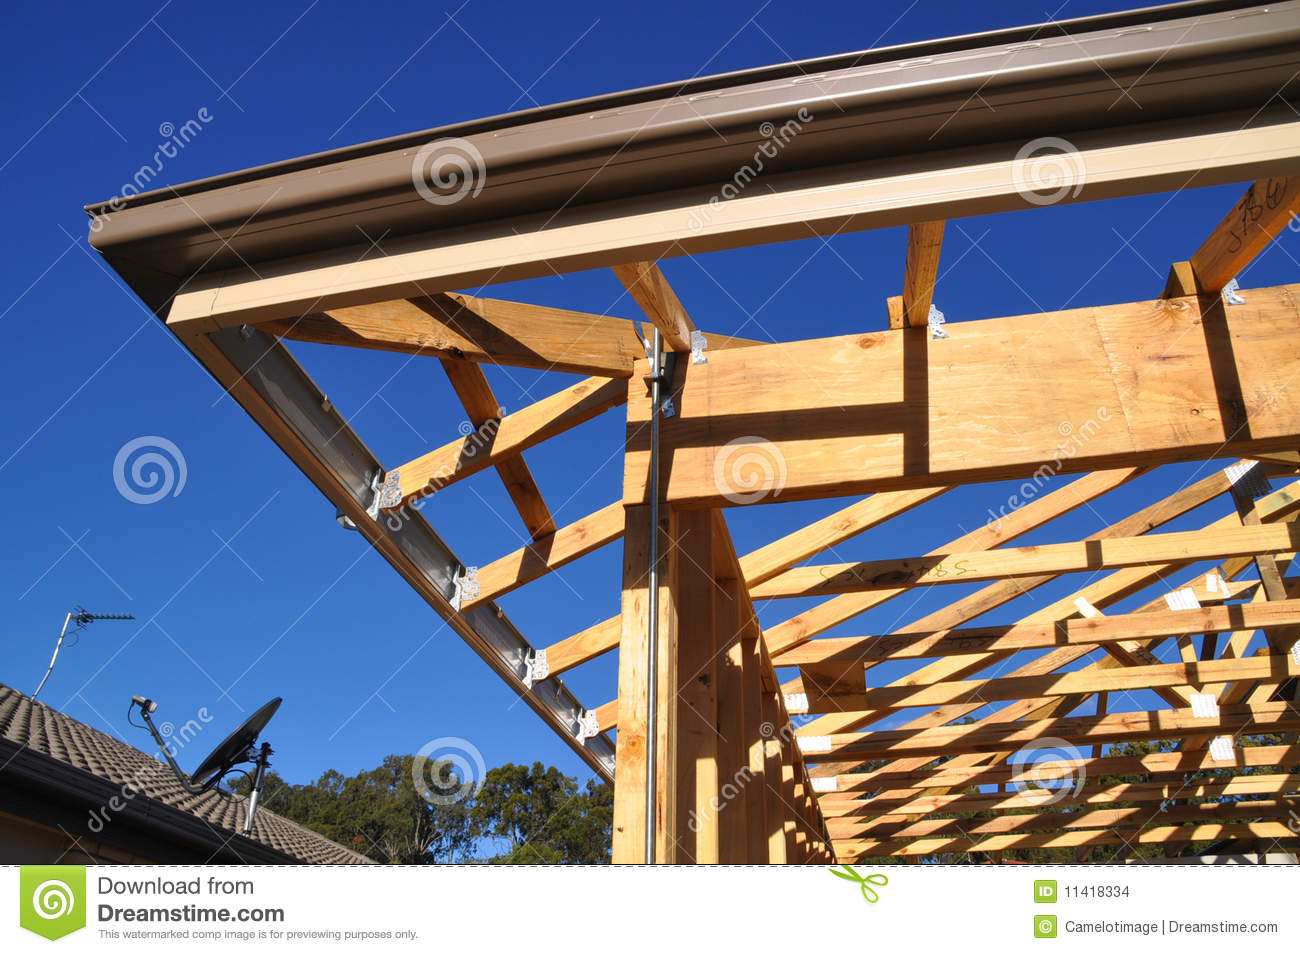 Building-eave Facia nd Gutter Detail Stock Images - Image: 11418334 - ^